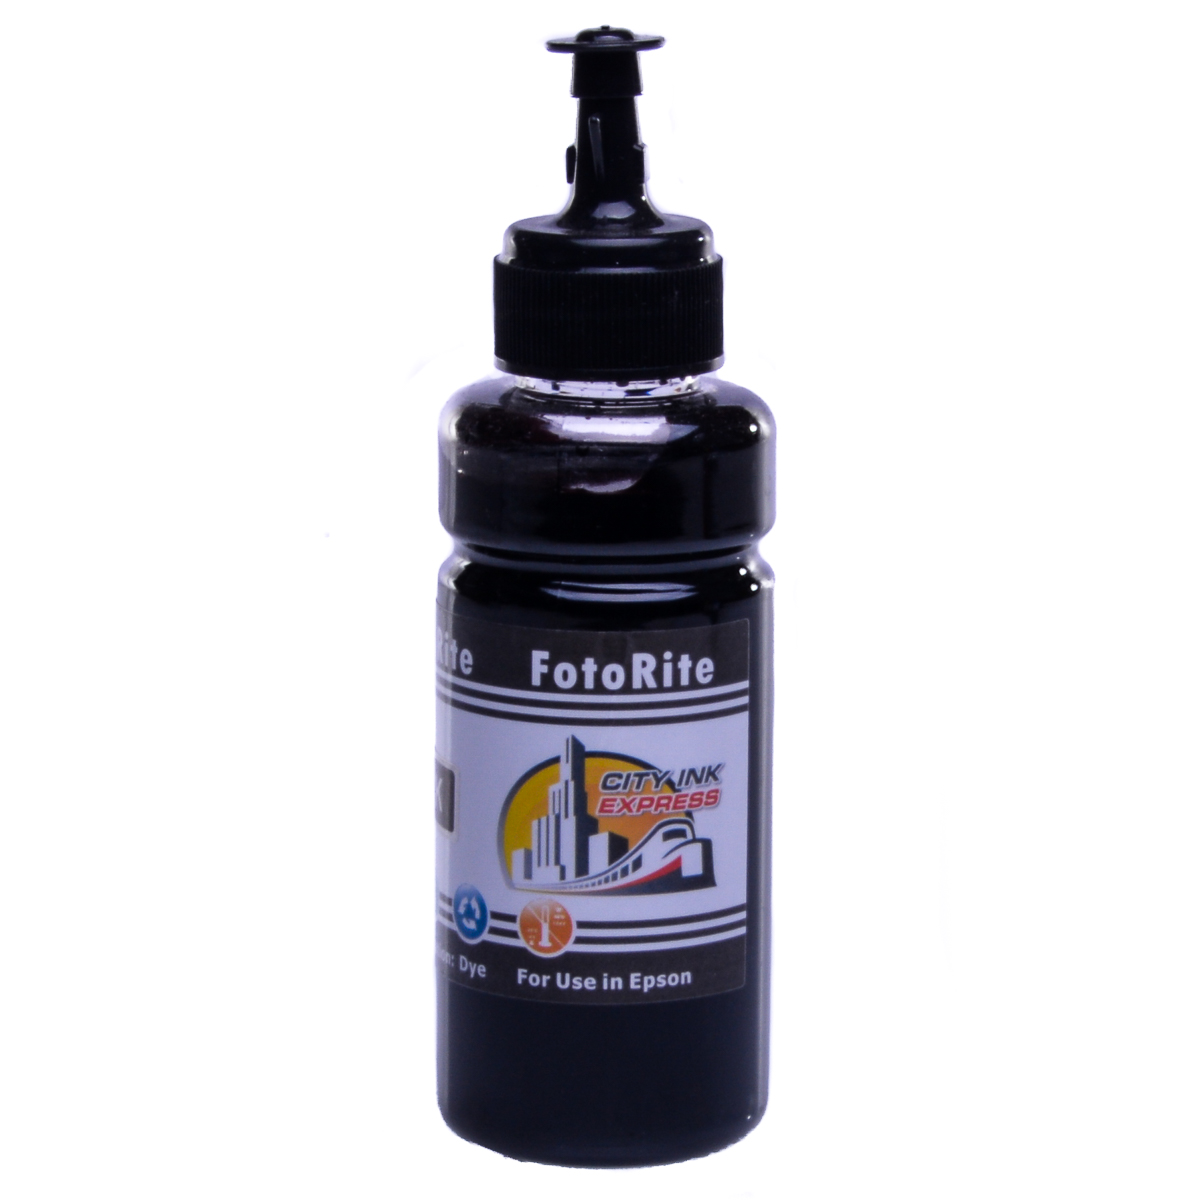 Cheap Black dye ink refill replaces Epson Stylus SX438W - T1281